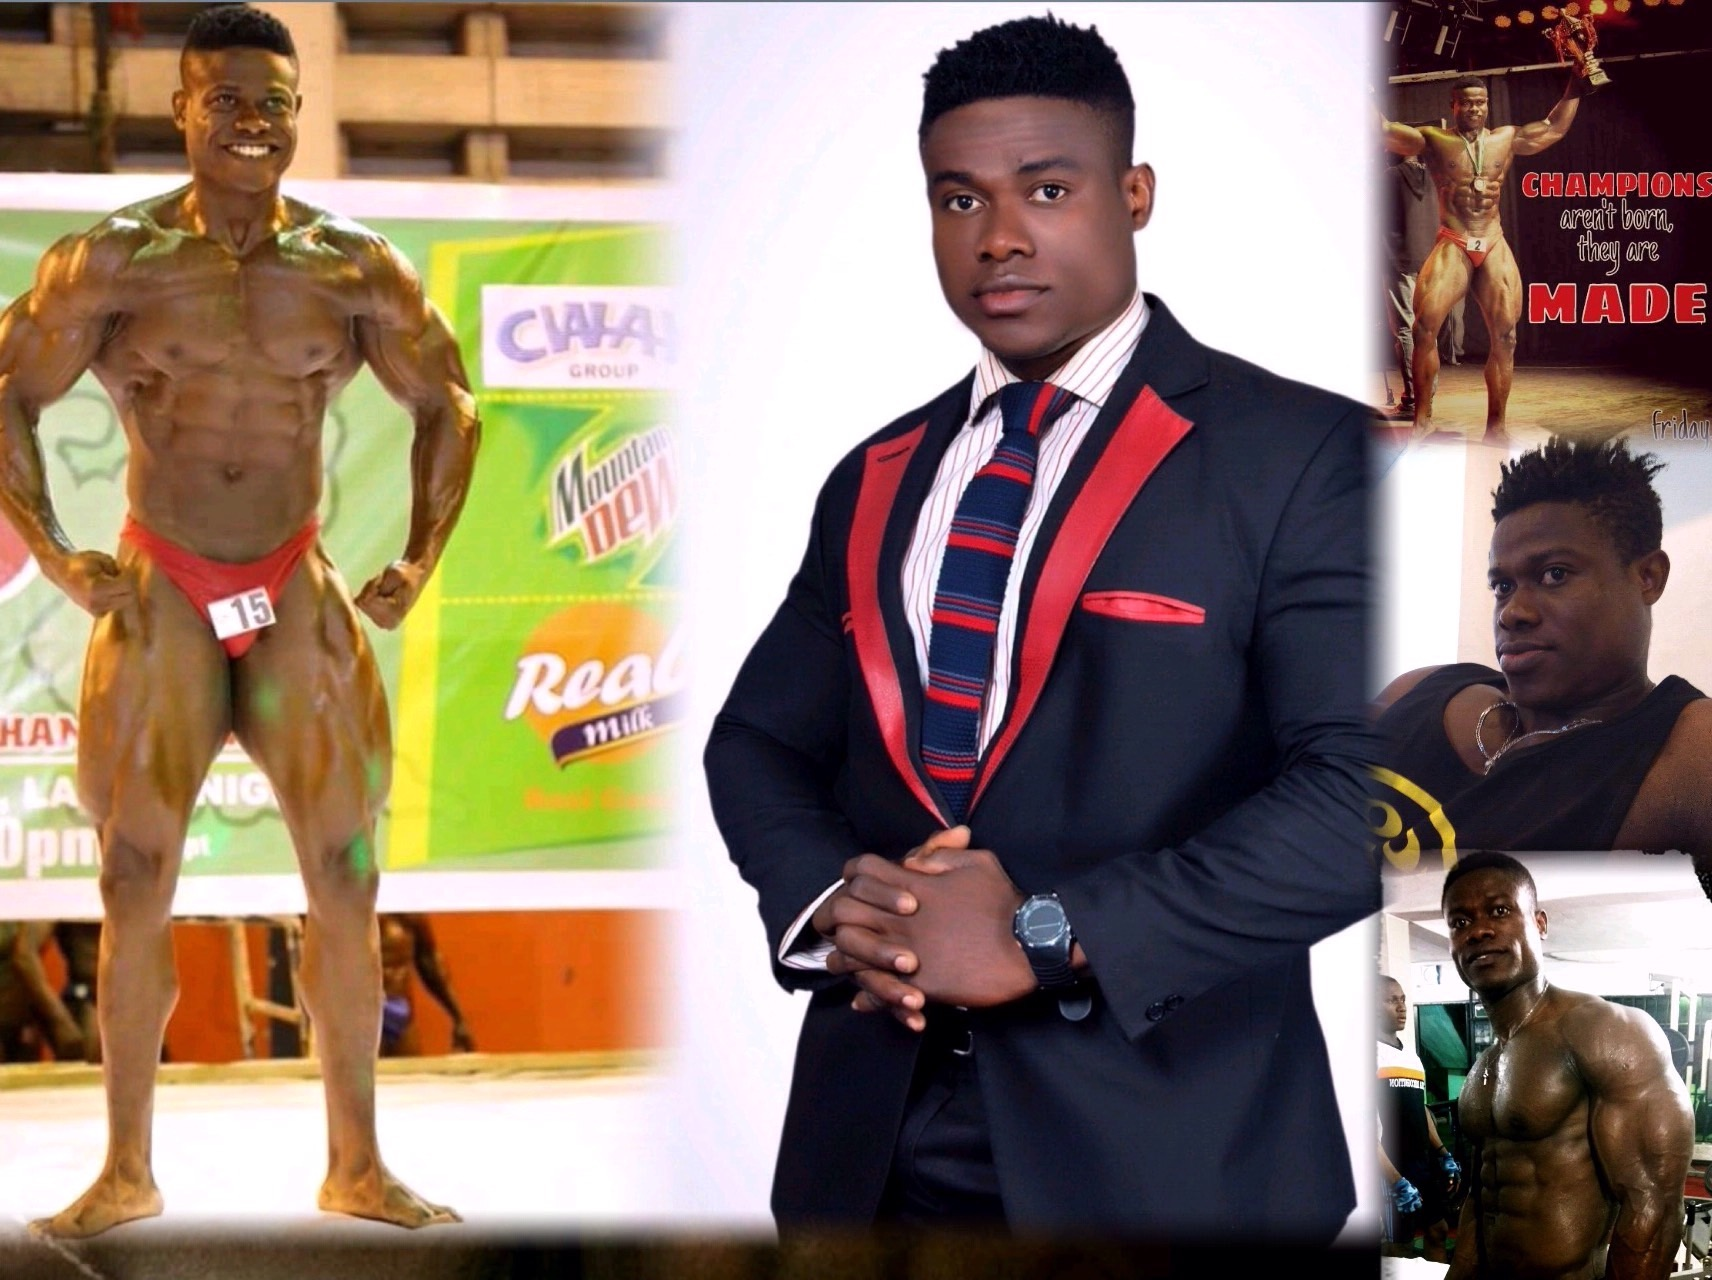 Nigeria Champion, Ifesinachi Ibenne: Bodybuilding Transformed Me, My Mom Now Calls Me Five-In-One Son